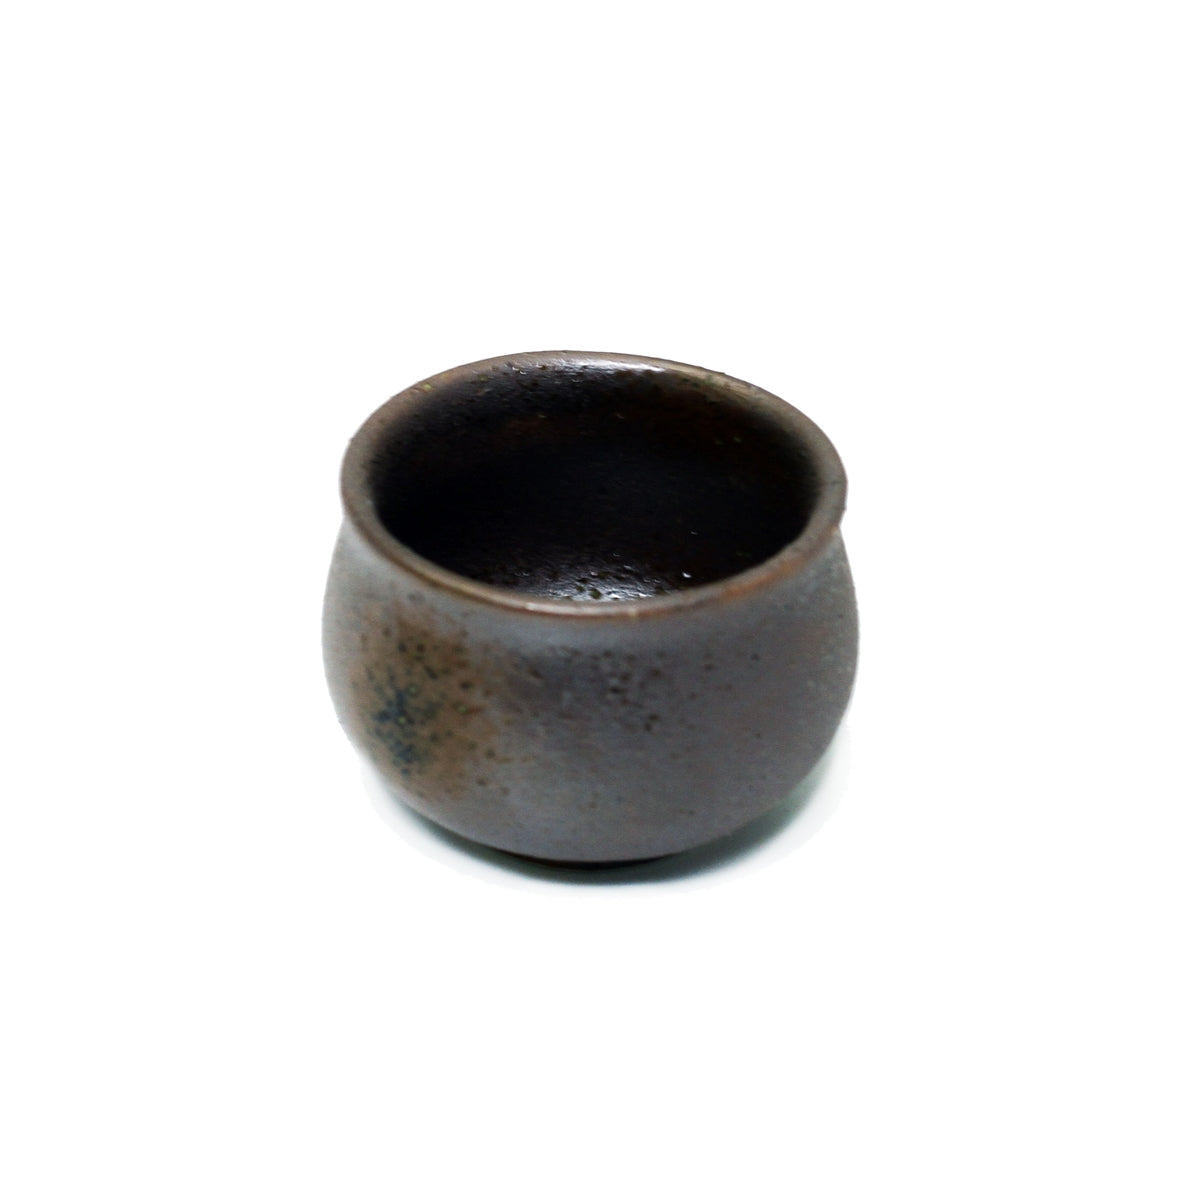 Rusty Brown Ceramic Sake Cup 1.5 fl oz